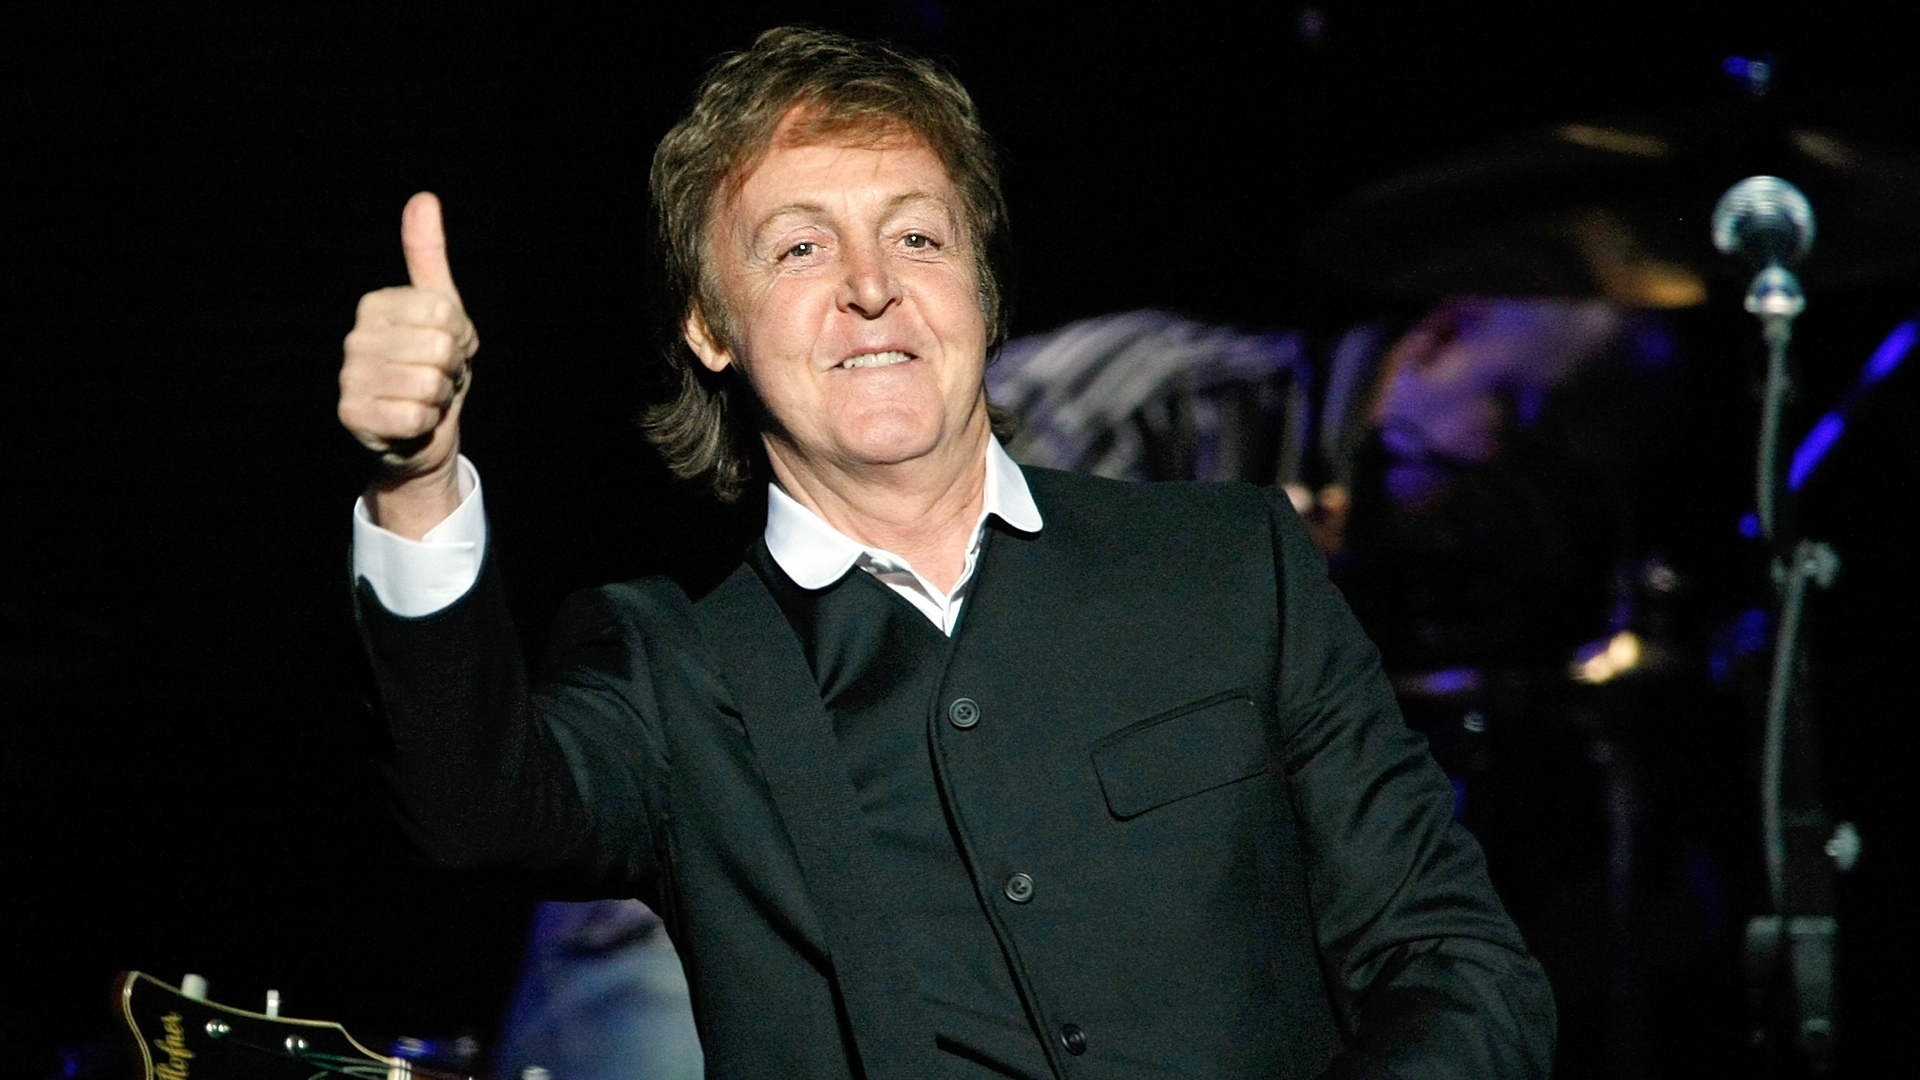 Paul McCartney Talks About Being Arrested For Marijuana